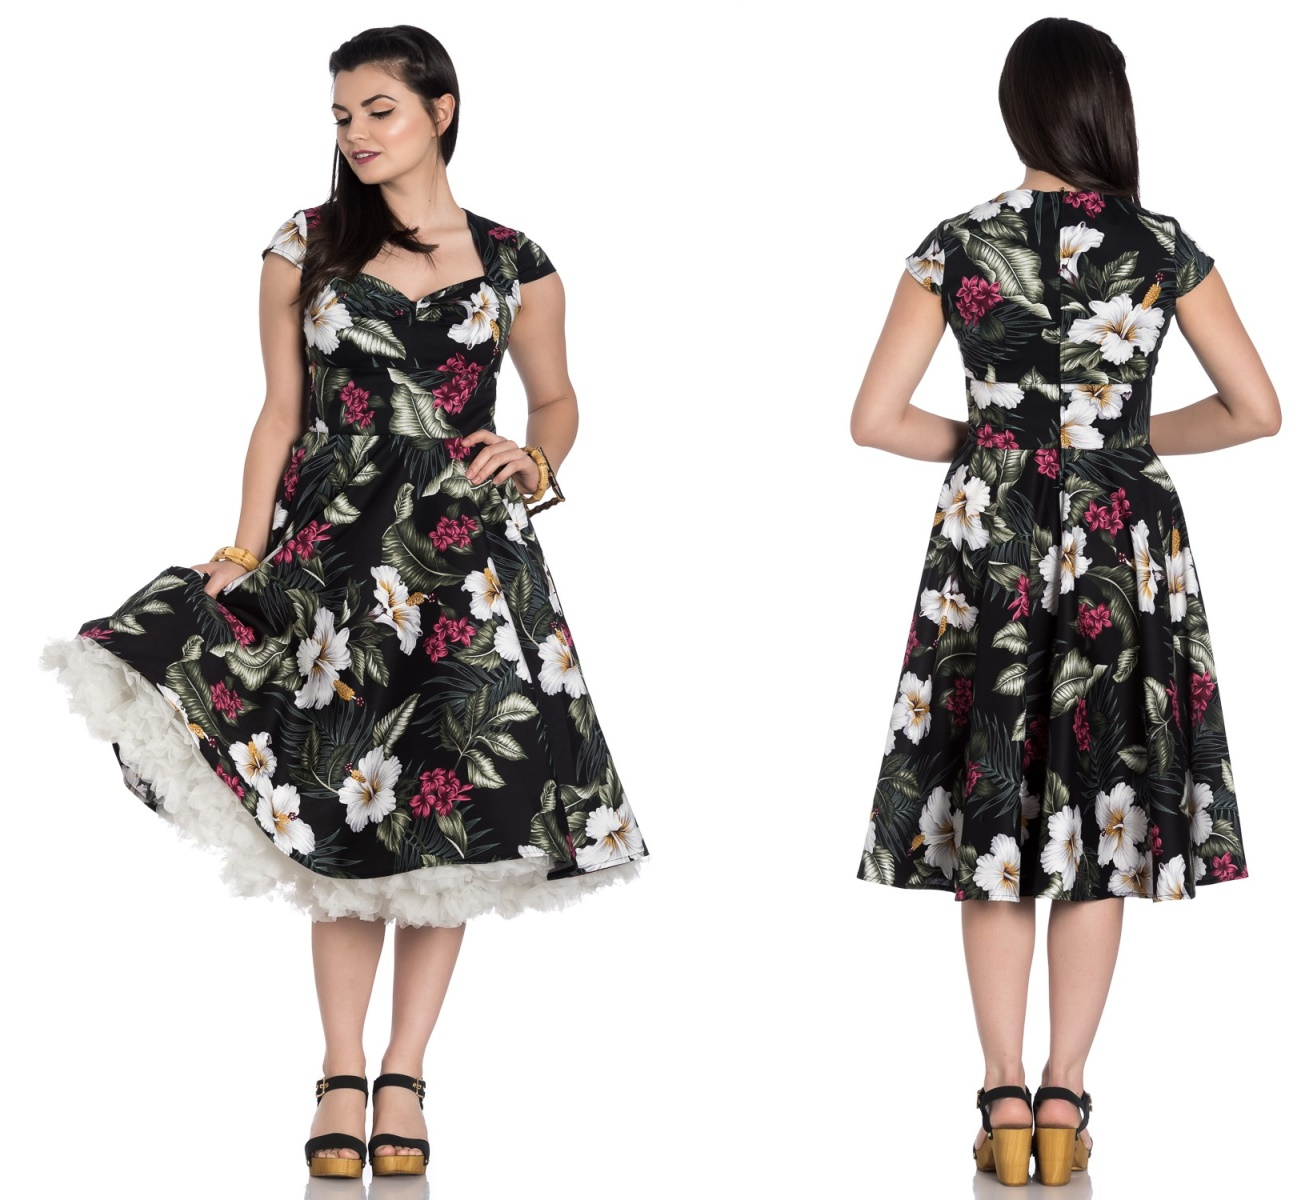 016479173eeb39 Kalei Dress Rock n Roll Kleid Blumenmuster Hellbunny in S ...